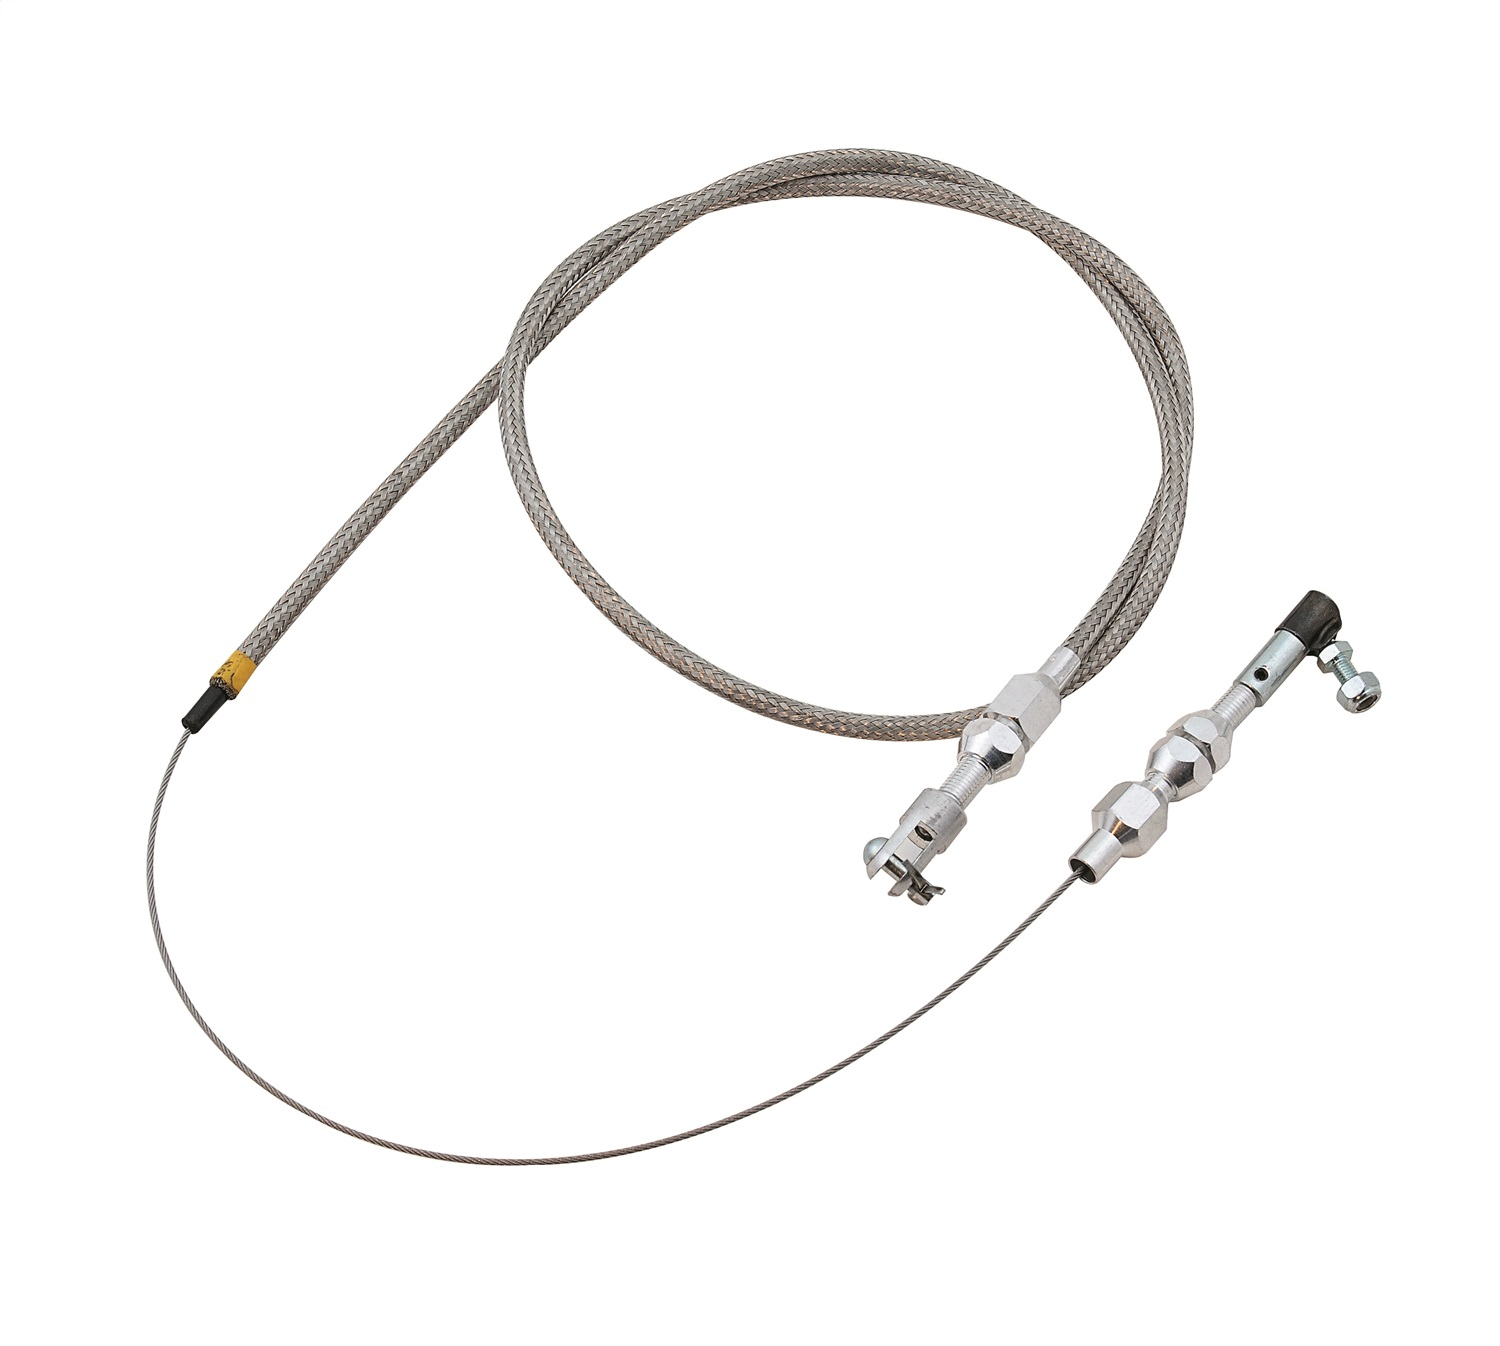 Mr. Gasket Accelerator Cable (5659)